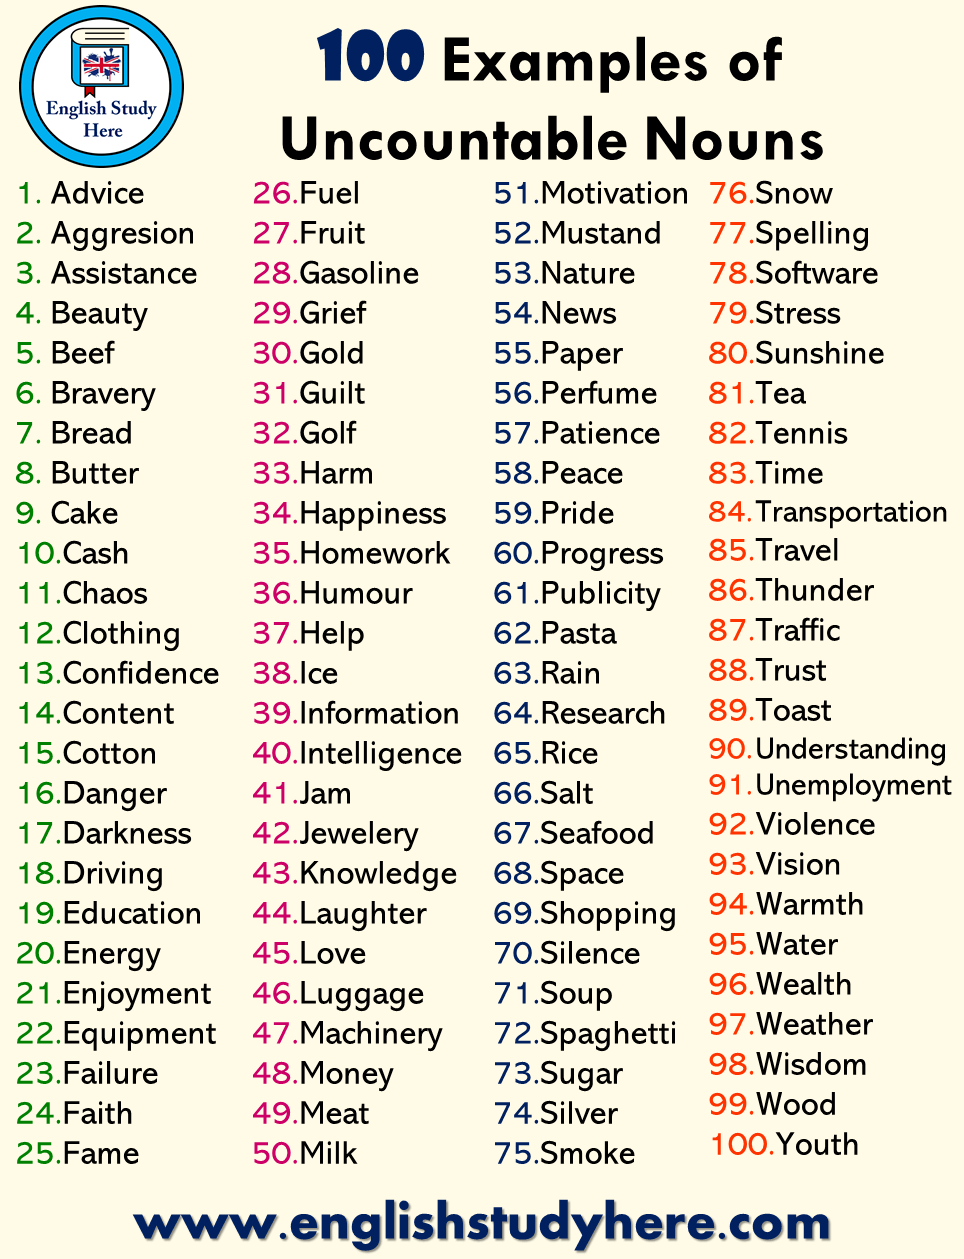 100 Examples of Uncountable Nouns in English